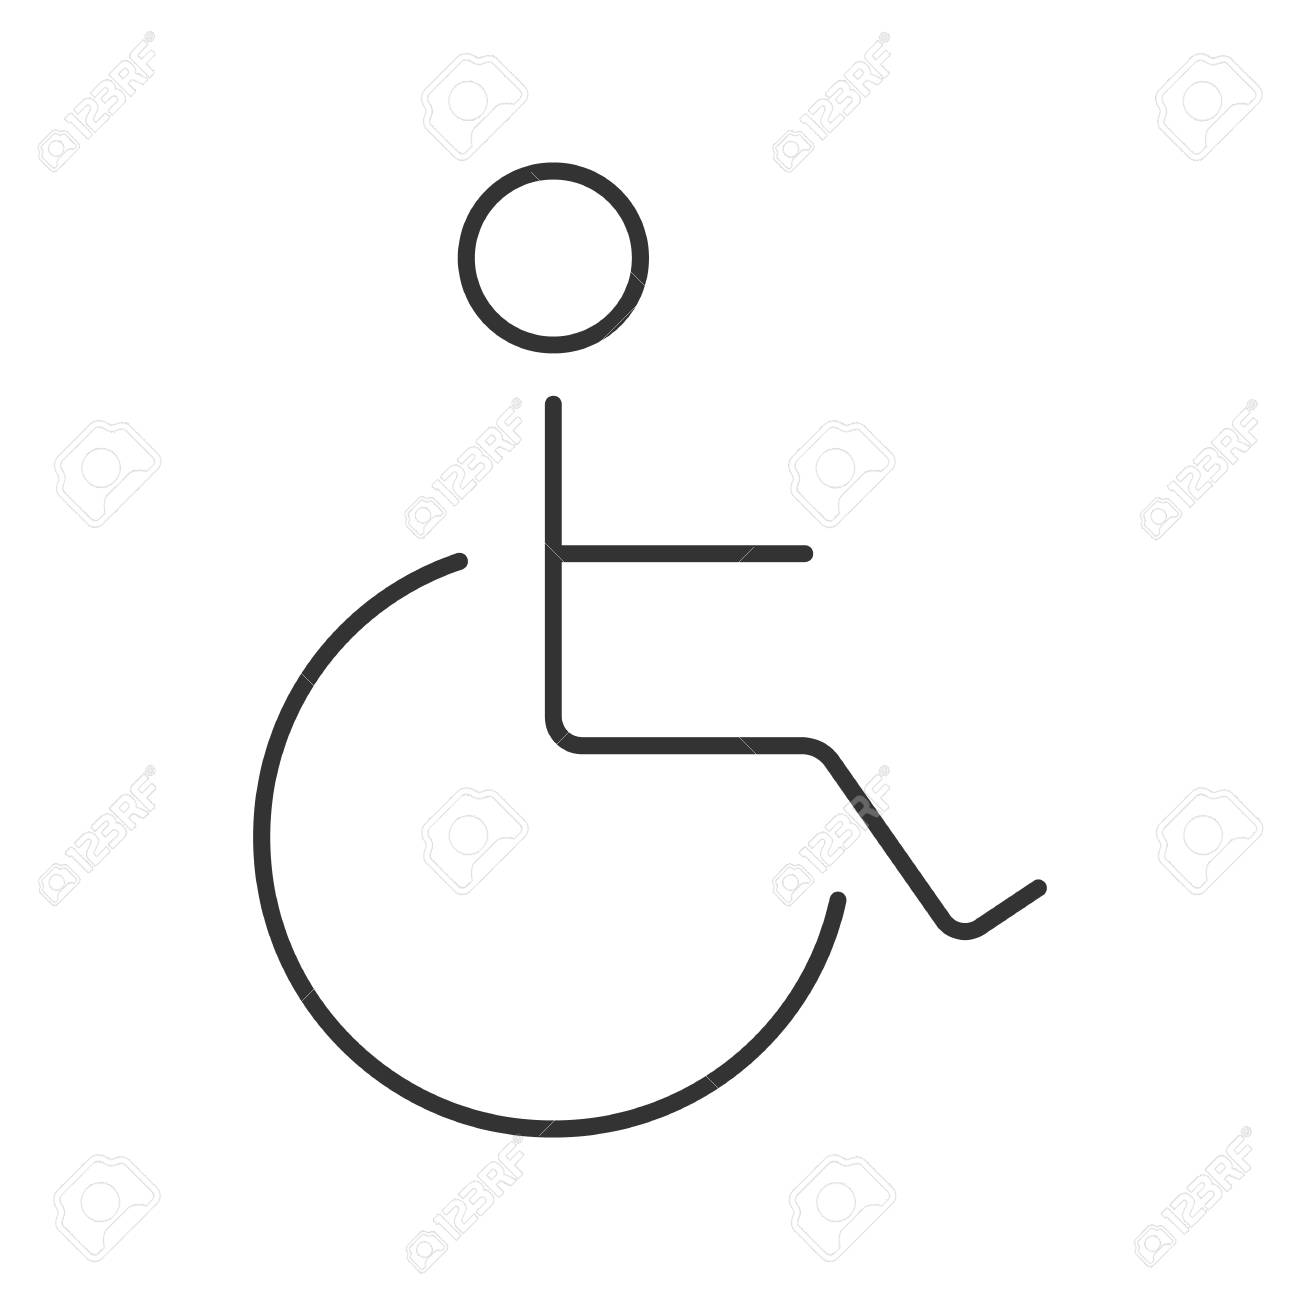 Disabled Person In Wheelchair Linear Icon Thin Line Illustration